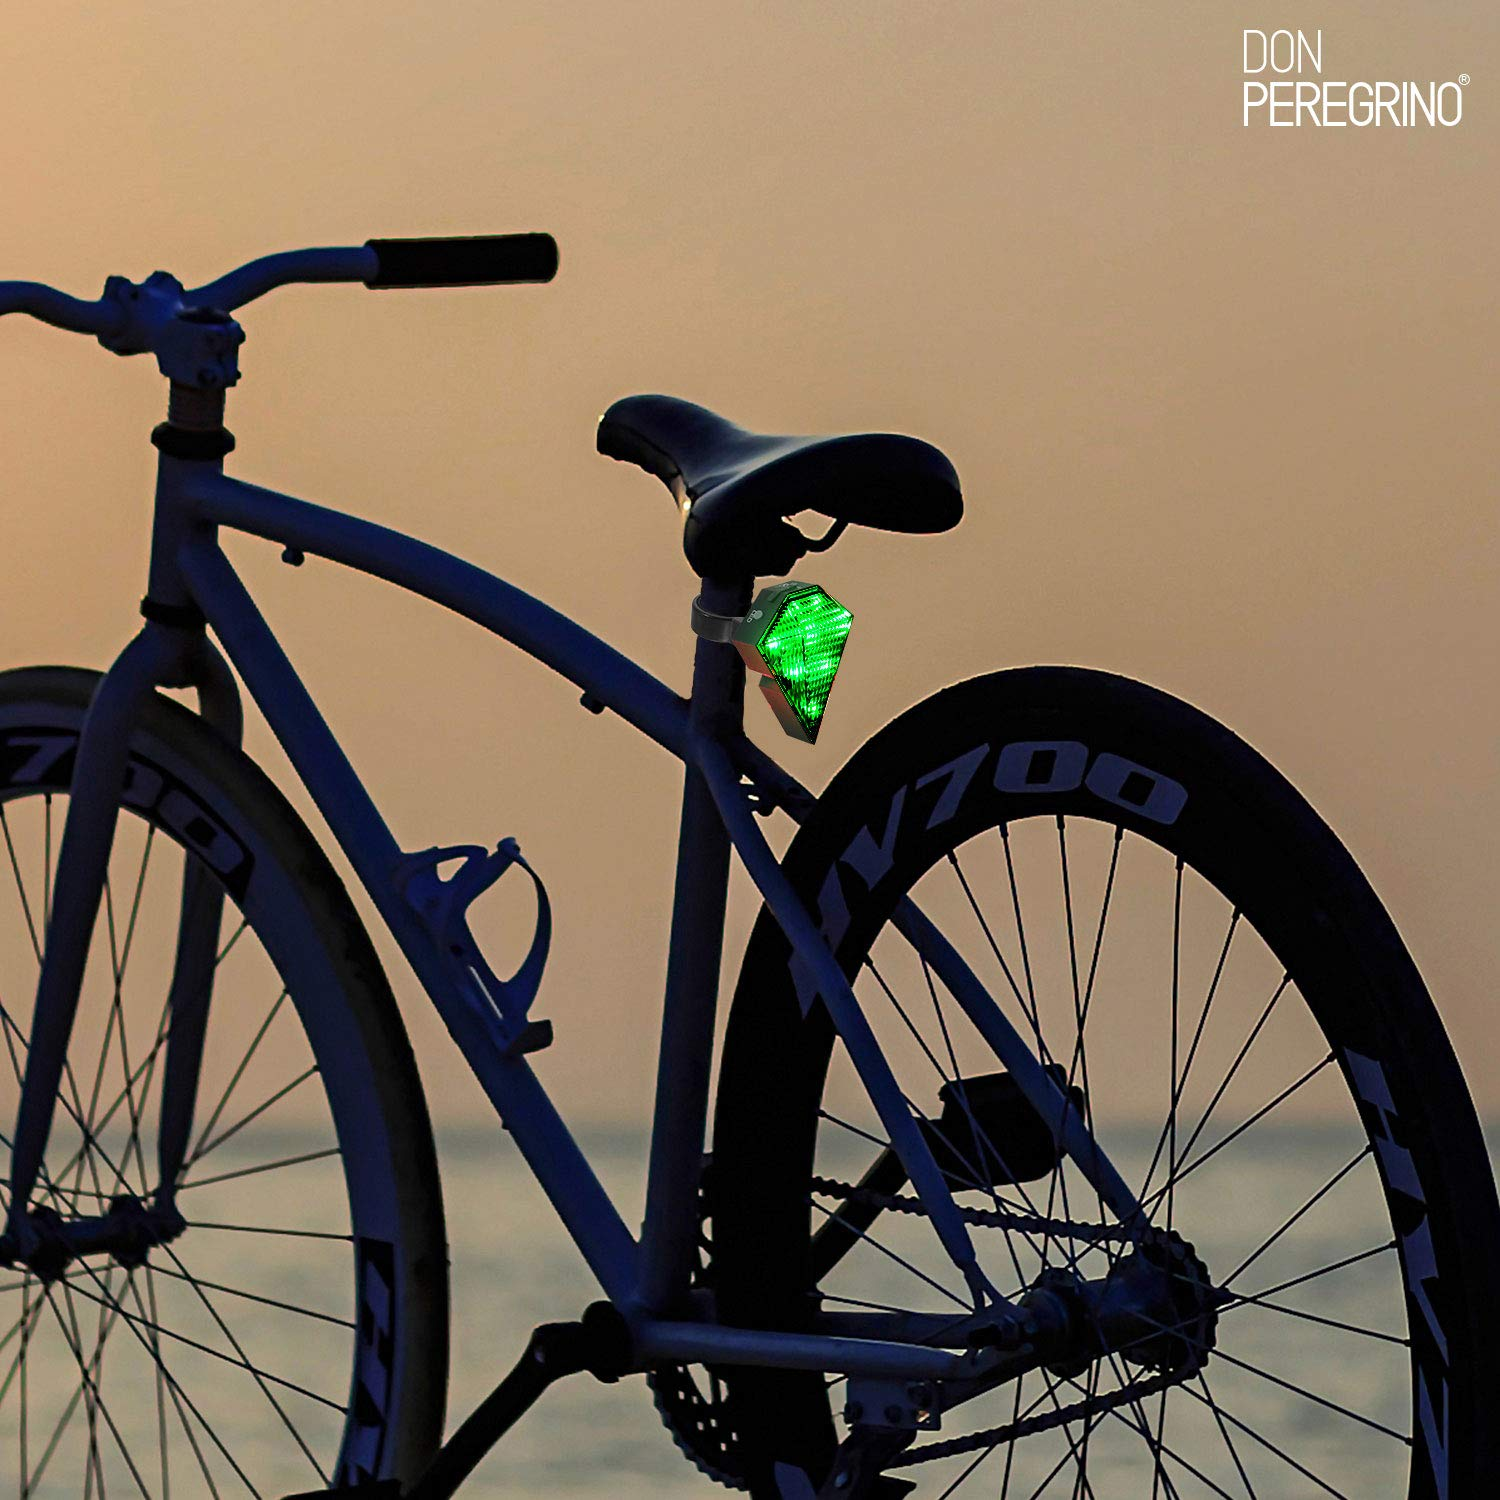 DONPEREGRINO R3 - Led Luz Trasera Bici Potente con Carril Virtual ...